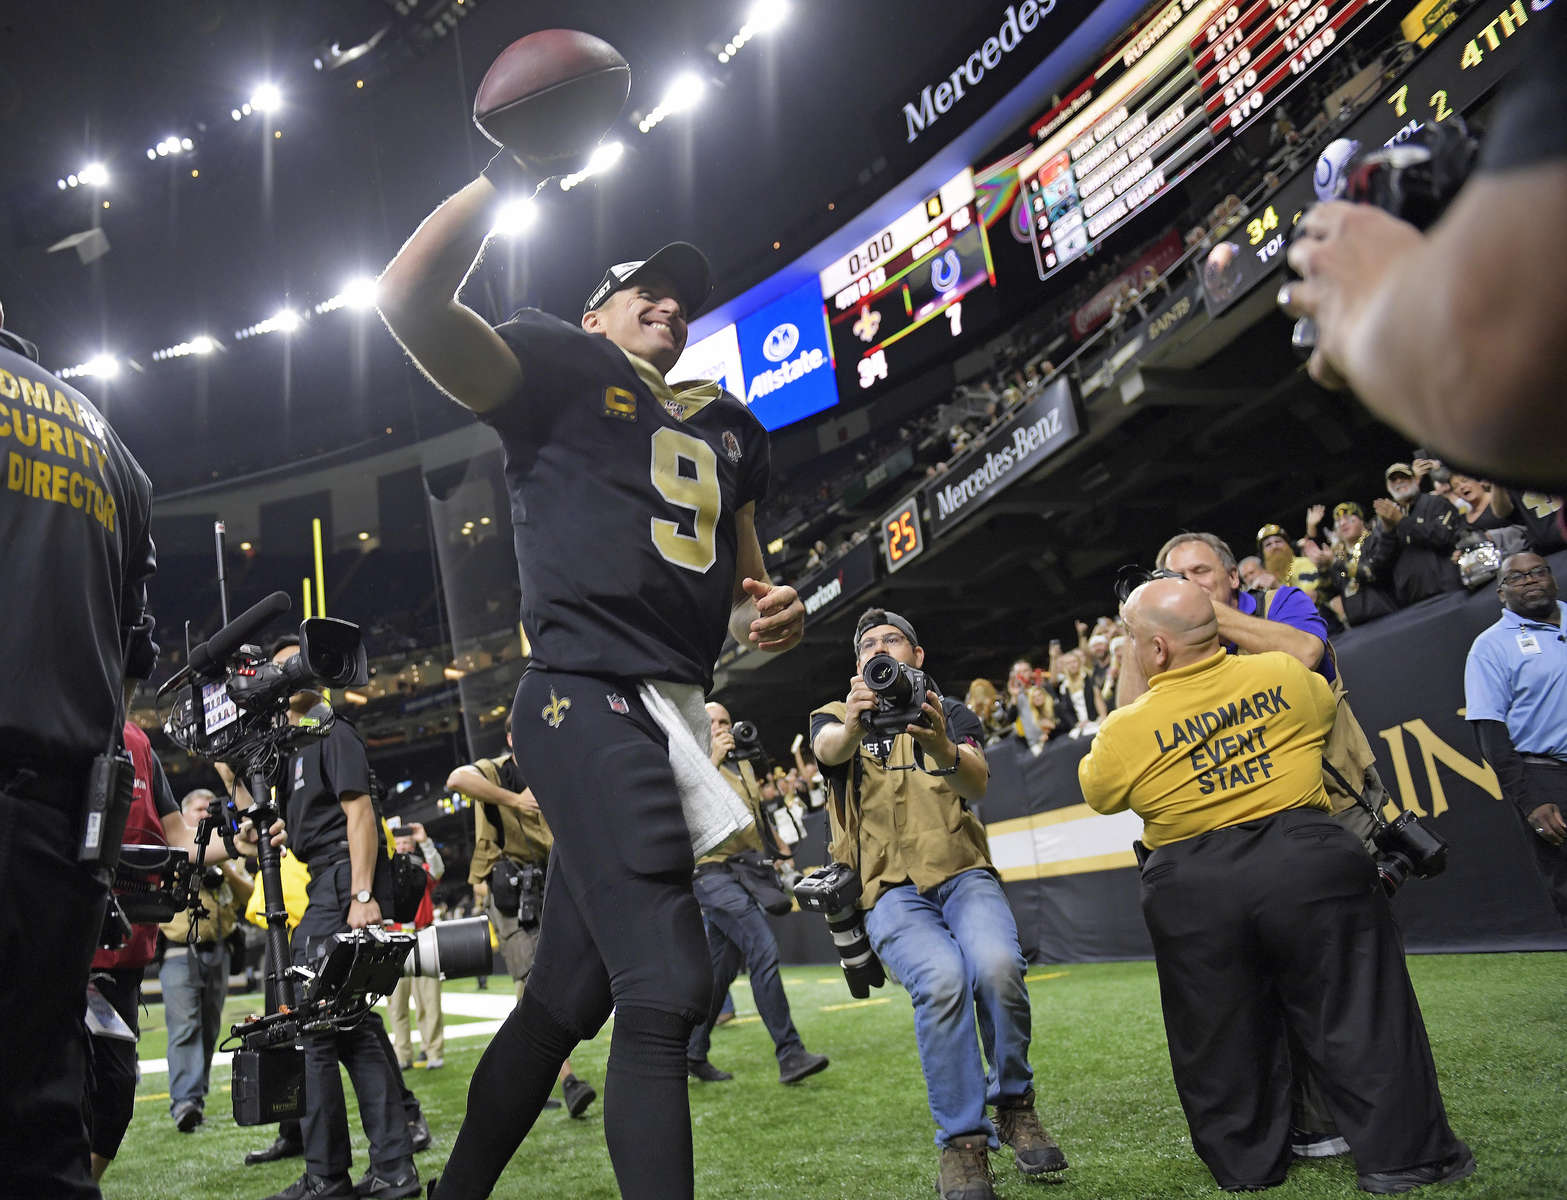 New Orleans Saints quarterback Drew Brees (9) leaves the dome after the game as he celebrates breaking the NFL record for career passing touchdowns of 539, set by Peyton Manning, in the second half of an NFL football game against the Indianapolis Colts in New Orleans, Monday, Dec. 16, 2019.